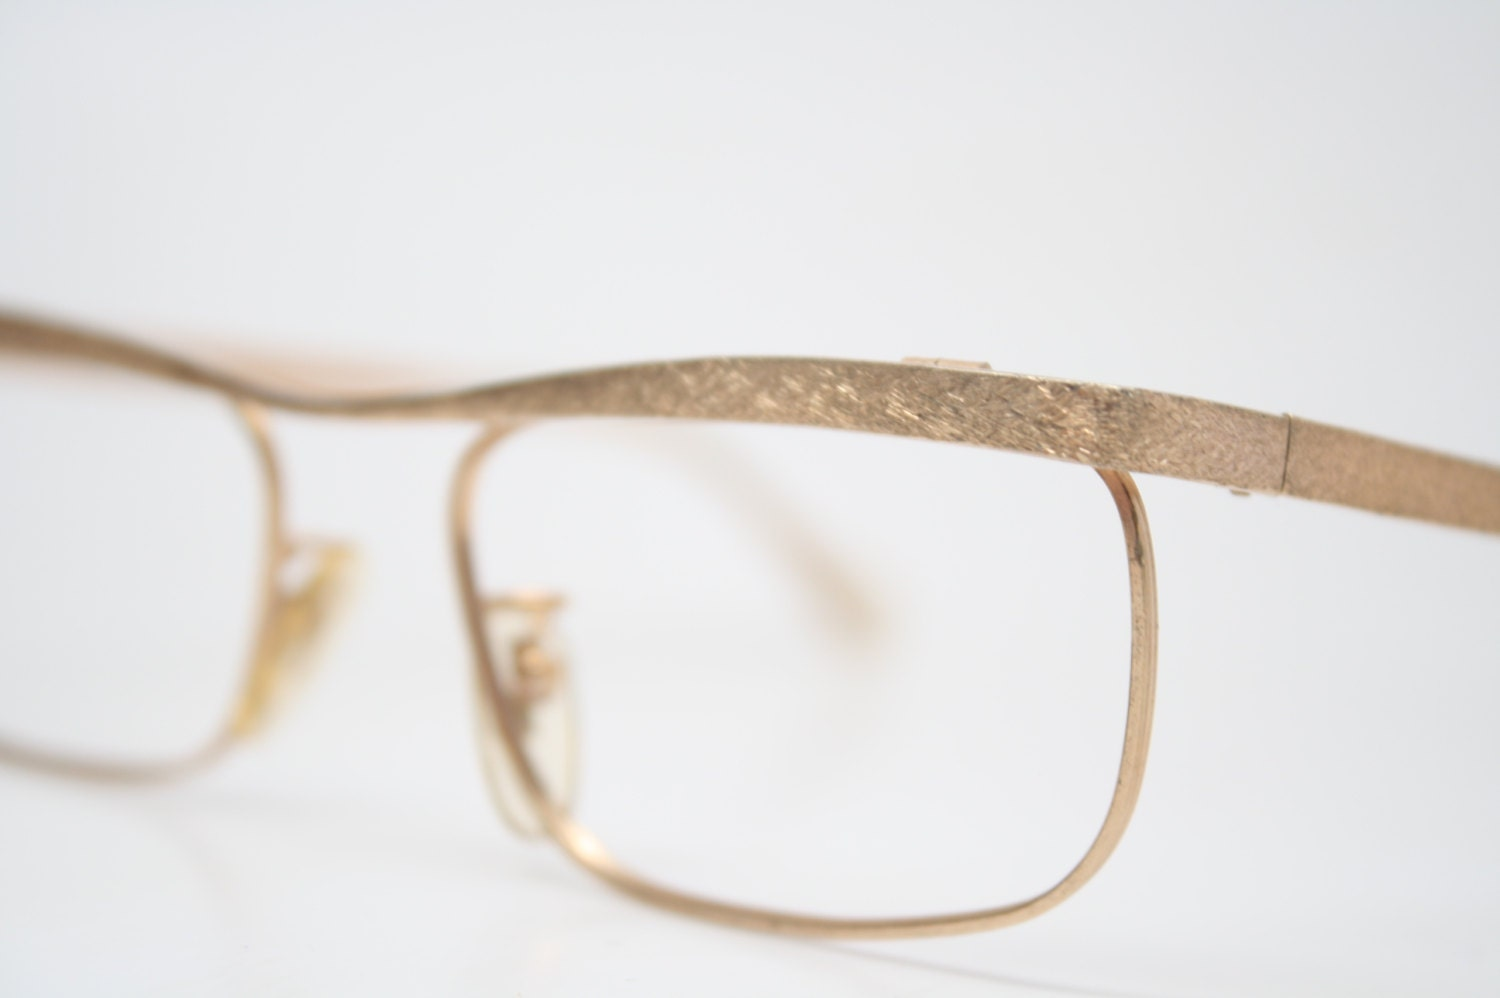 Antique Glasses Frames Unique shaped Small 1/20 10k Gold